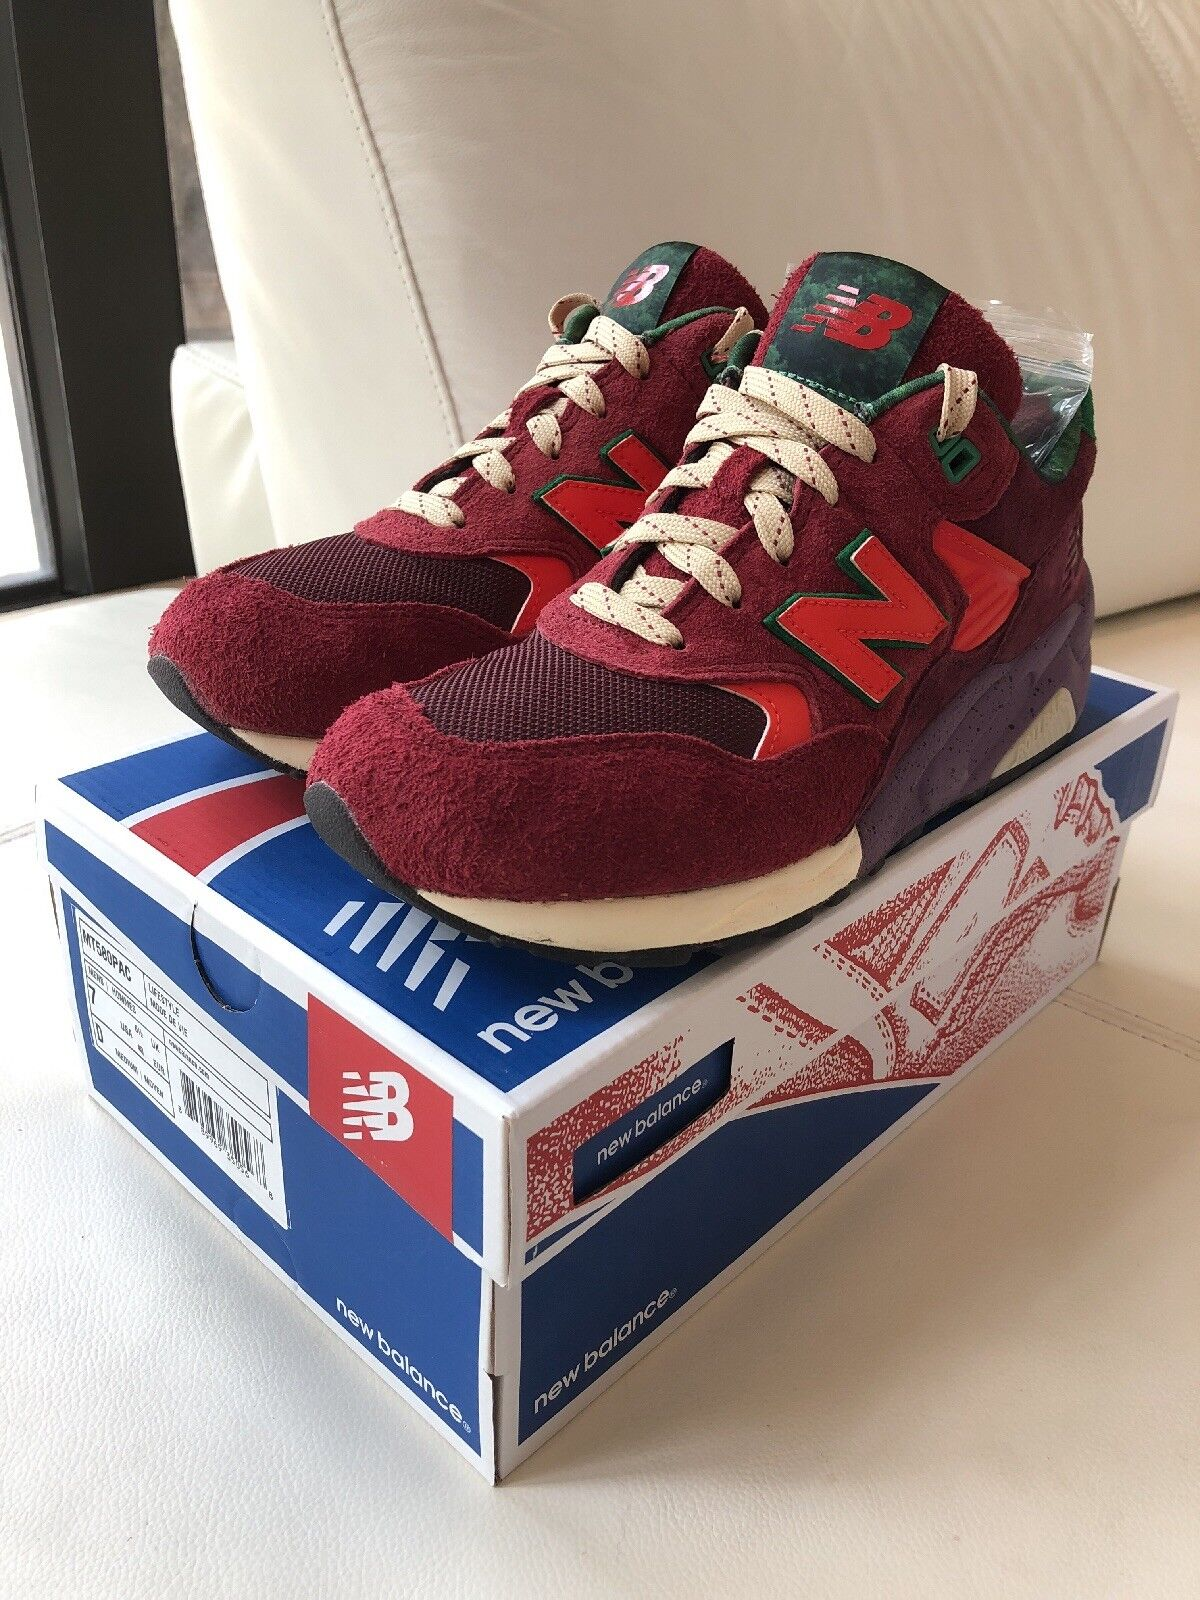 Packer x New Balance MT580  Pine Barrens  Size 7- LIMITED 500  Pre-Owned Worn 2X